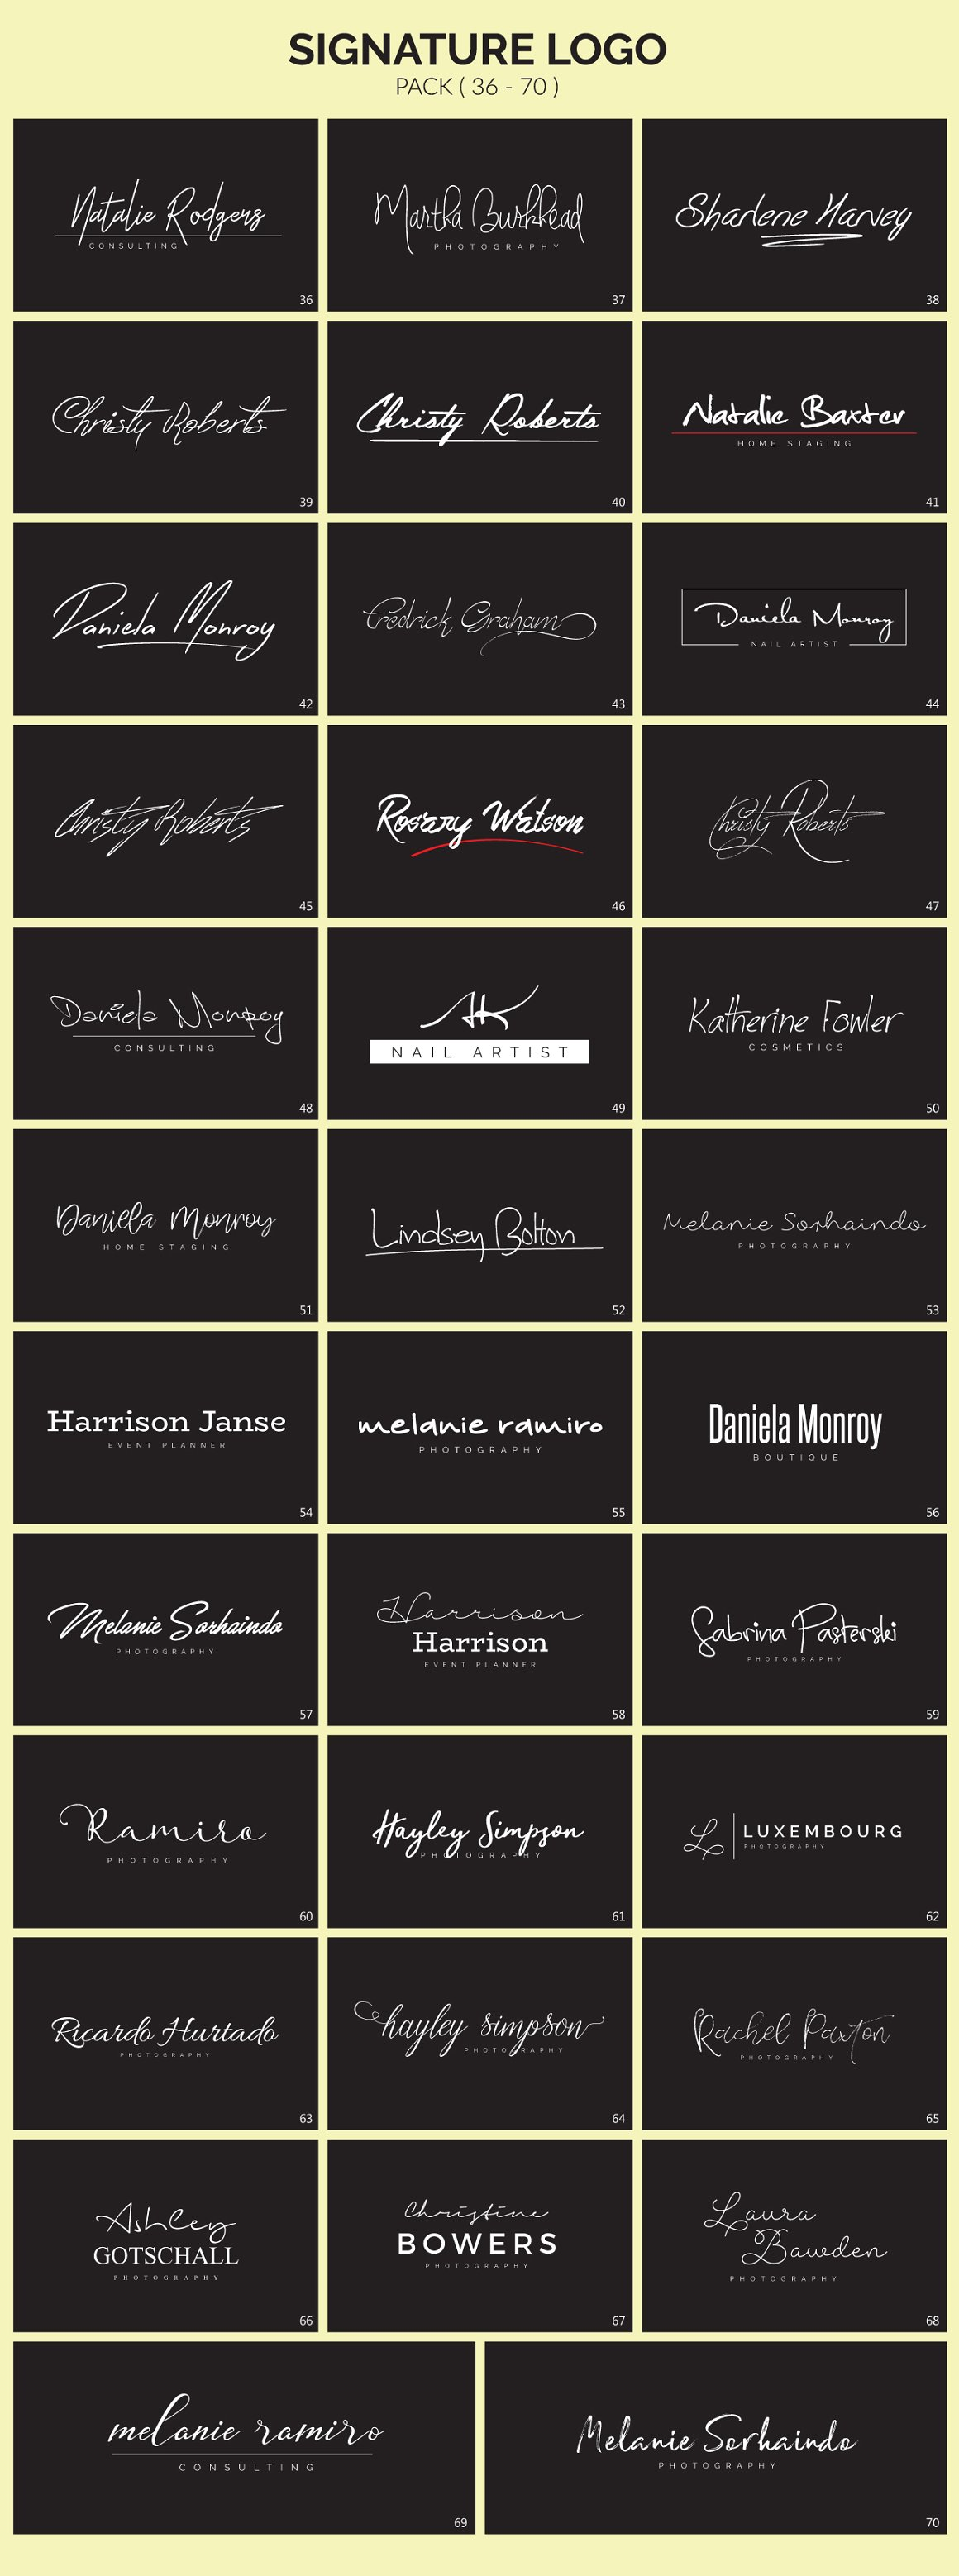 70 Signature Logo Bundle - signature logos 4